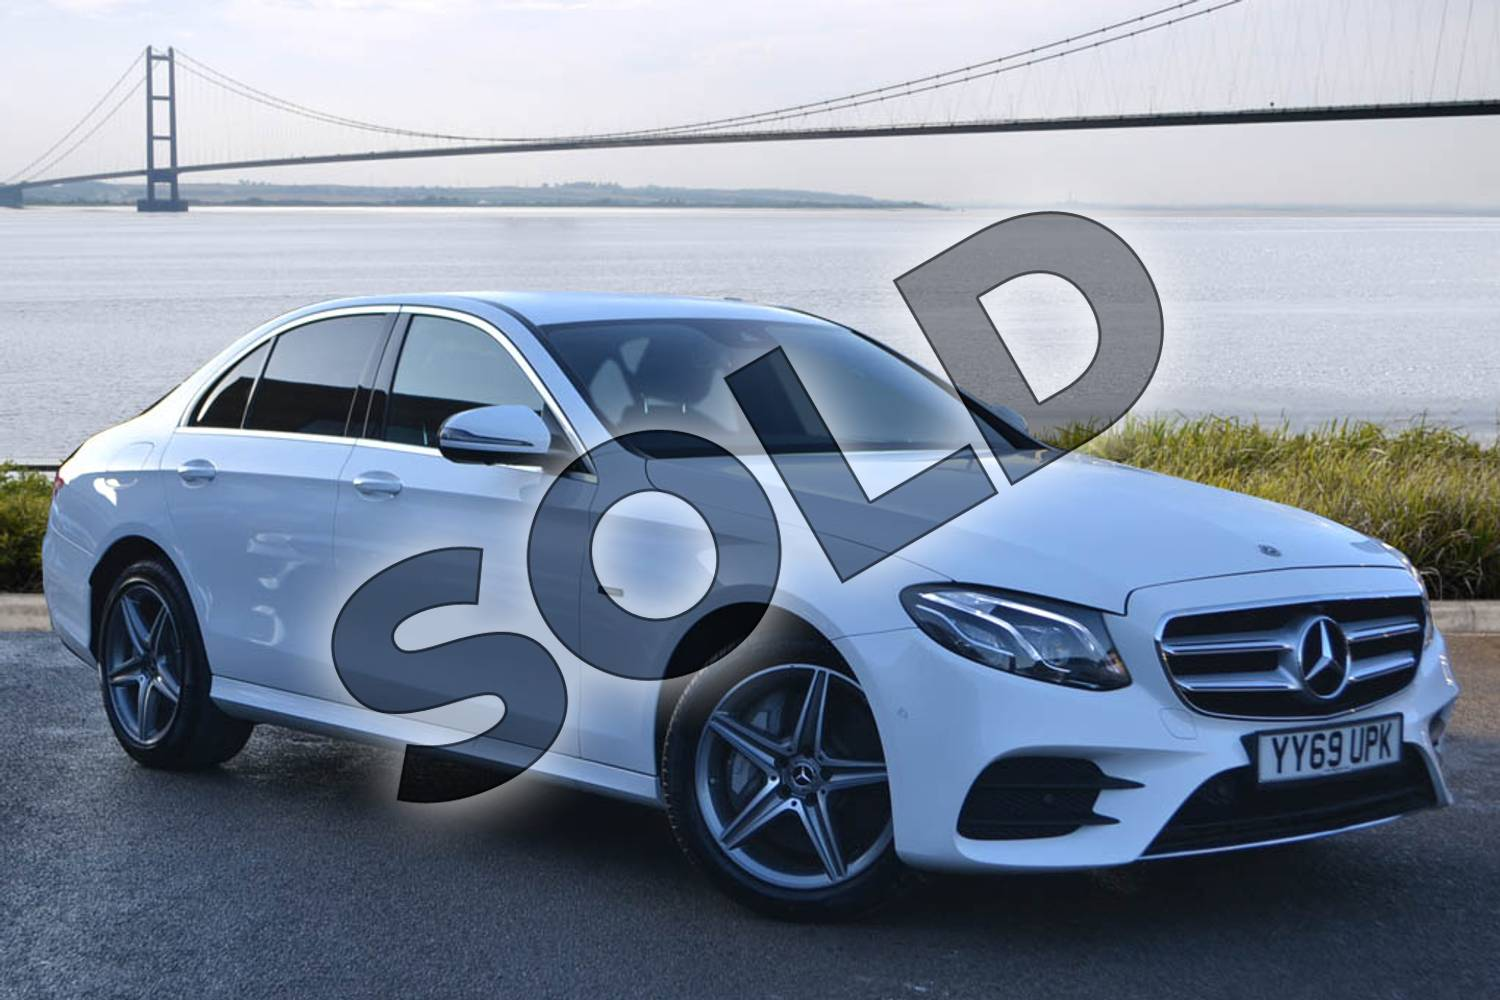 2020 Mercedes-Benz E Class Diesel Saloon E300de AMG Line Premium 4dr 9G-Tronic in Polar White at Mercedes-Benz of Hull